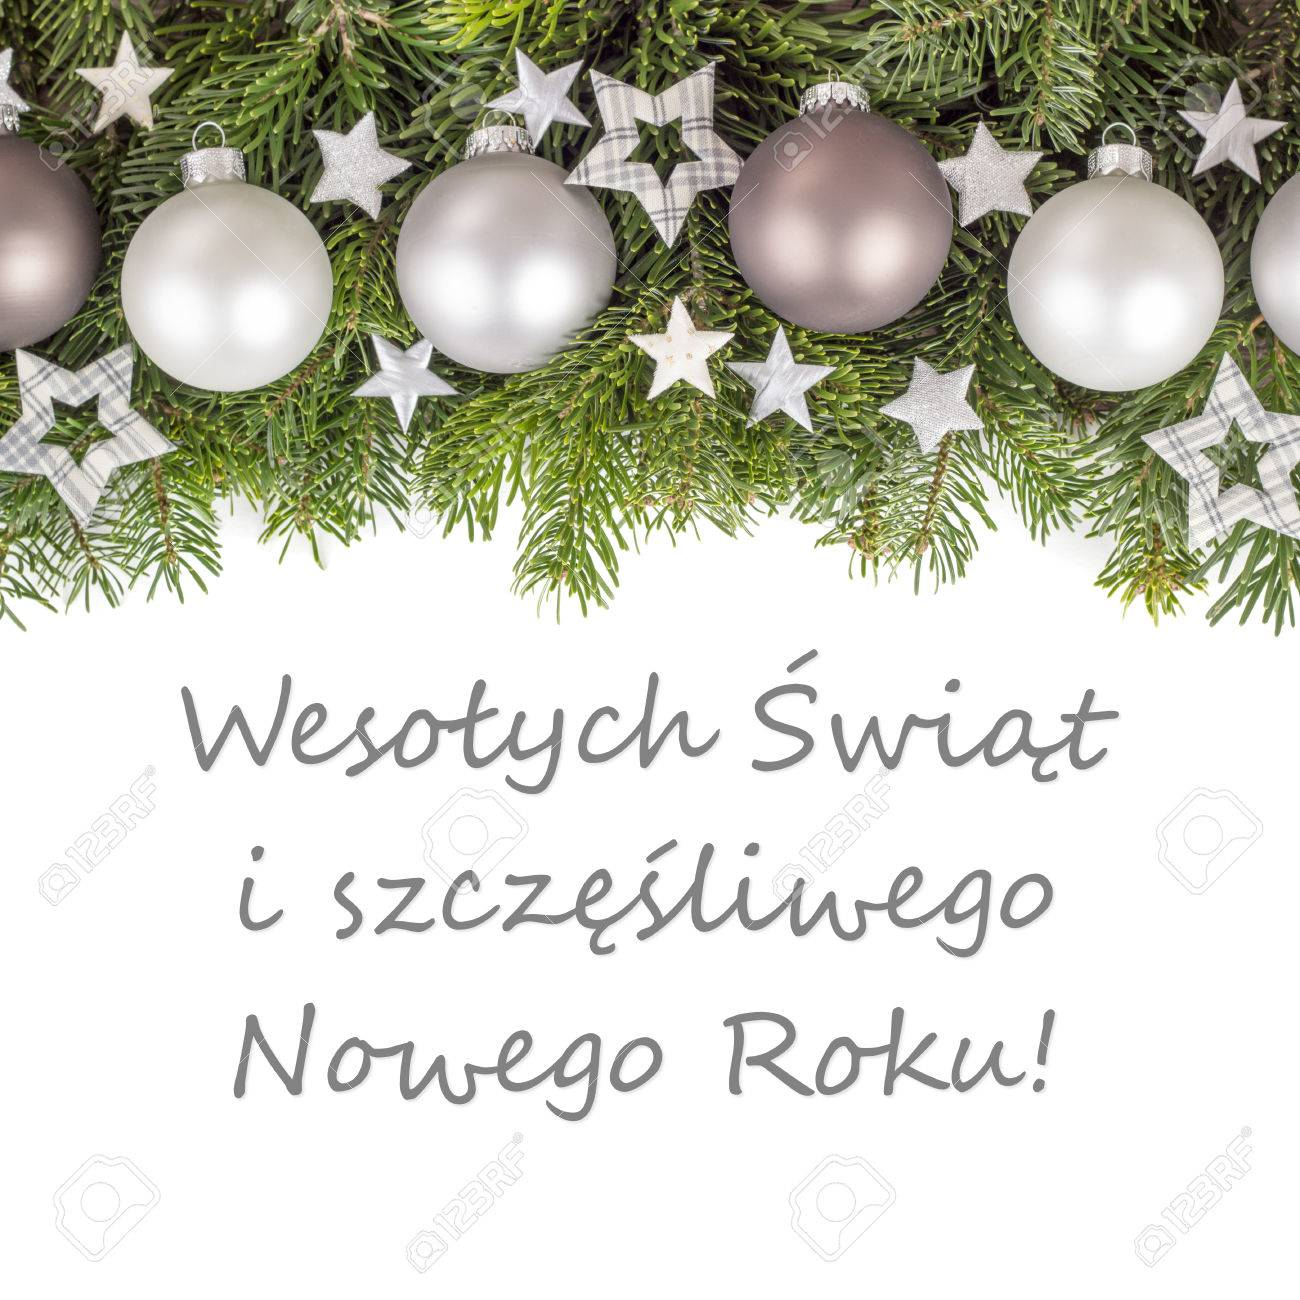 Merry Christmas In Polish.Polish Christmas Card With Christmas Baubles Fir Branches Golden